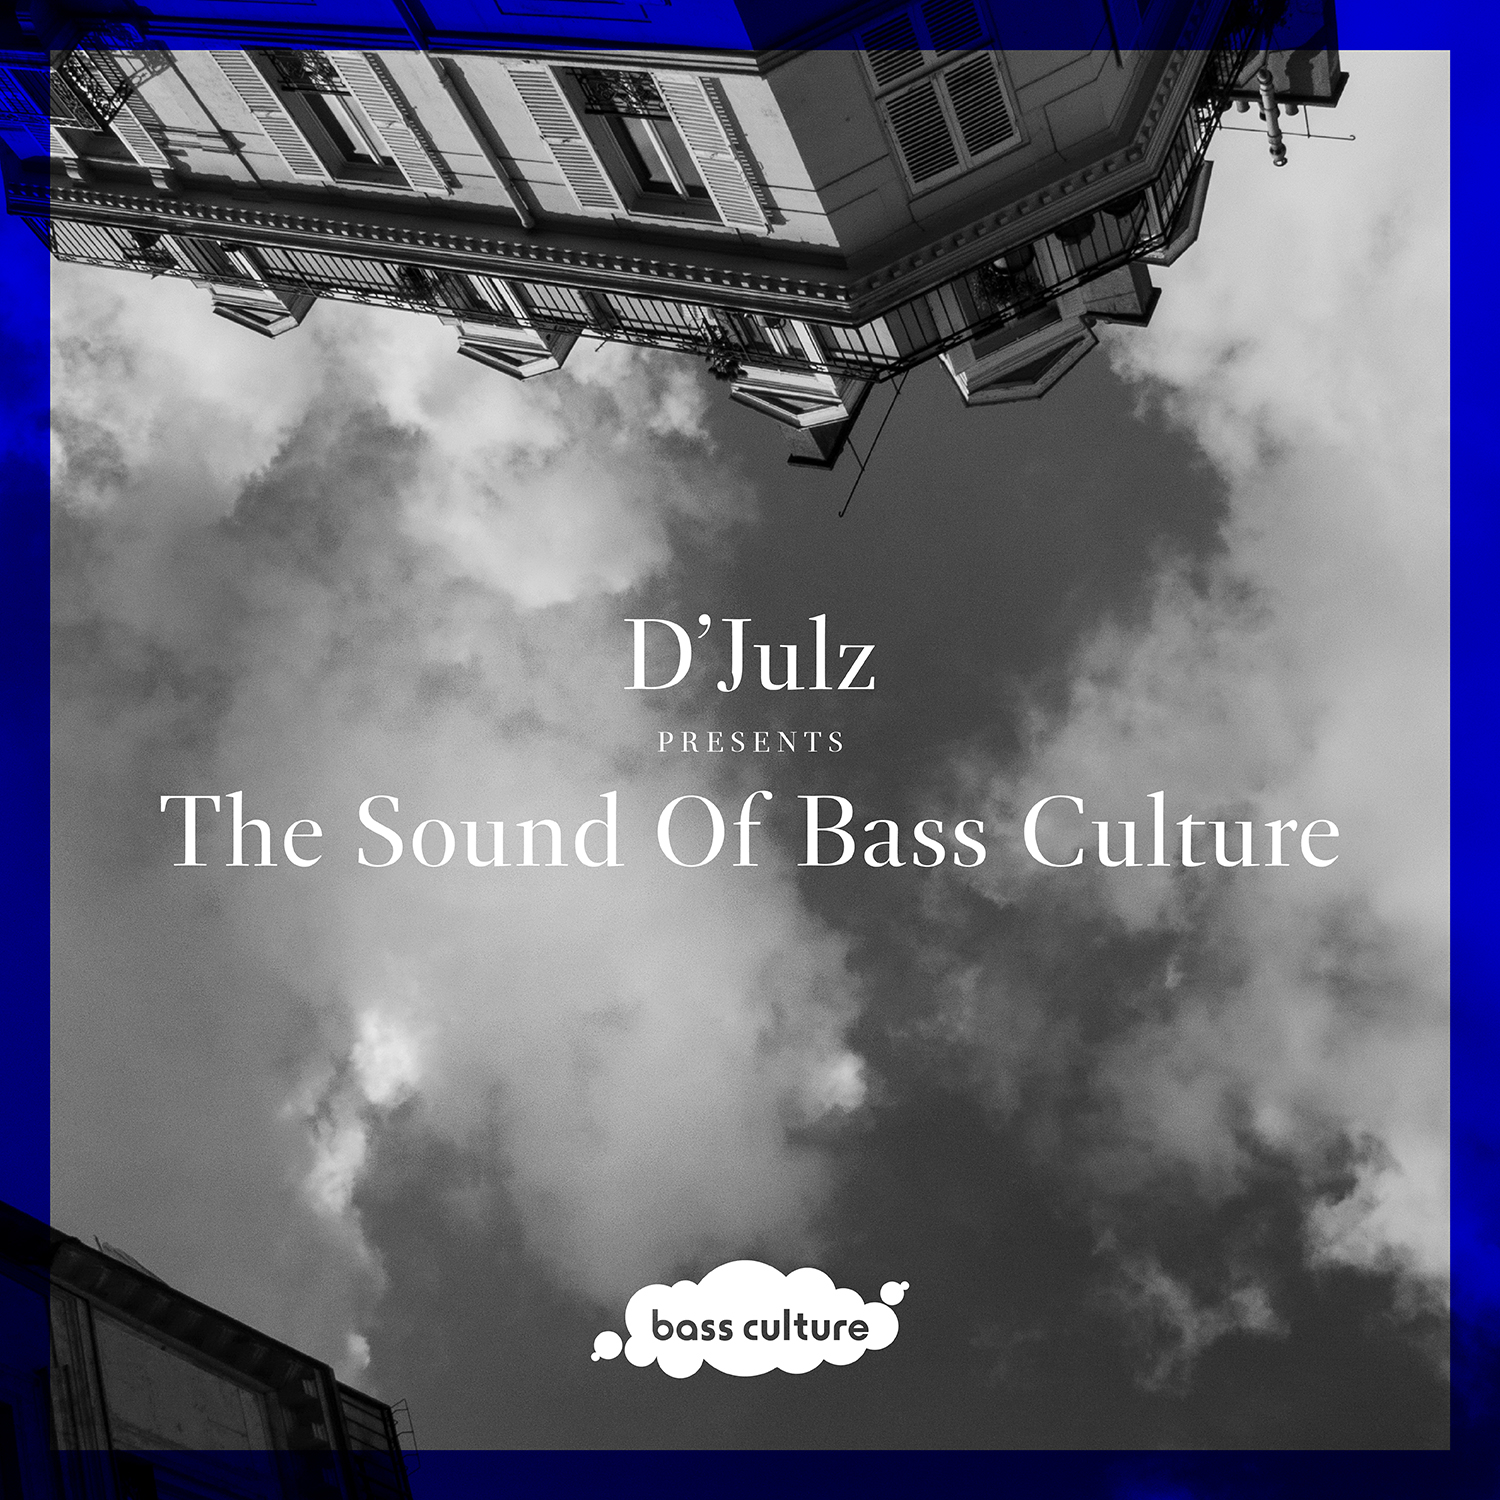 D'Julz presents The Sound of Bass Culture